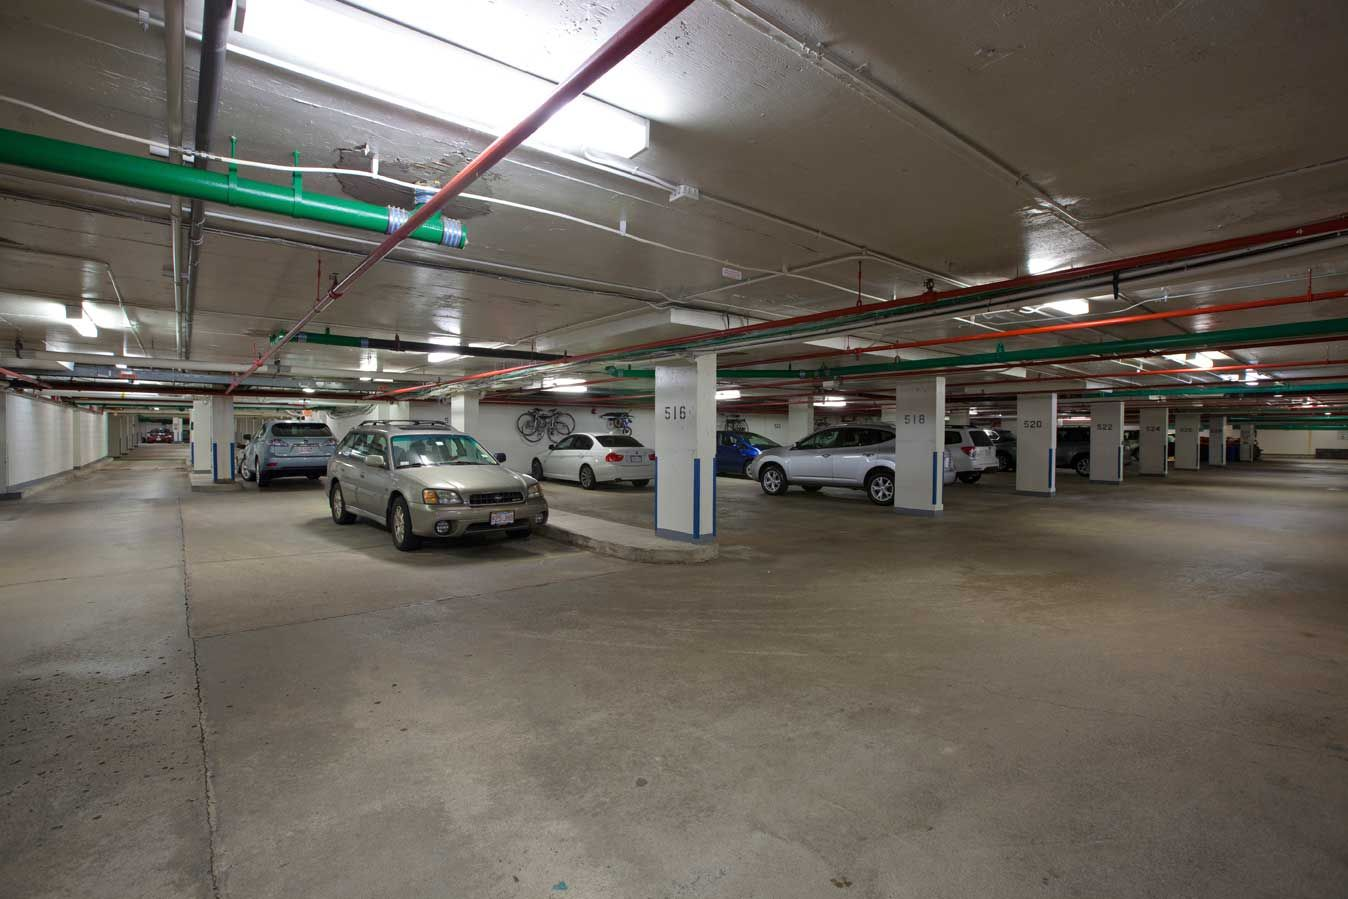 I chose this image to represent detained property held by a bailee valet parking luton brings a luxurious car park for your car meet and greet luton deals would be helpful to secure your time and money at the airport kristyandbryce Gallery